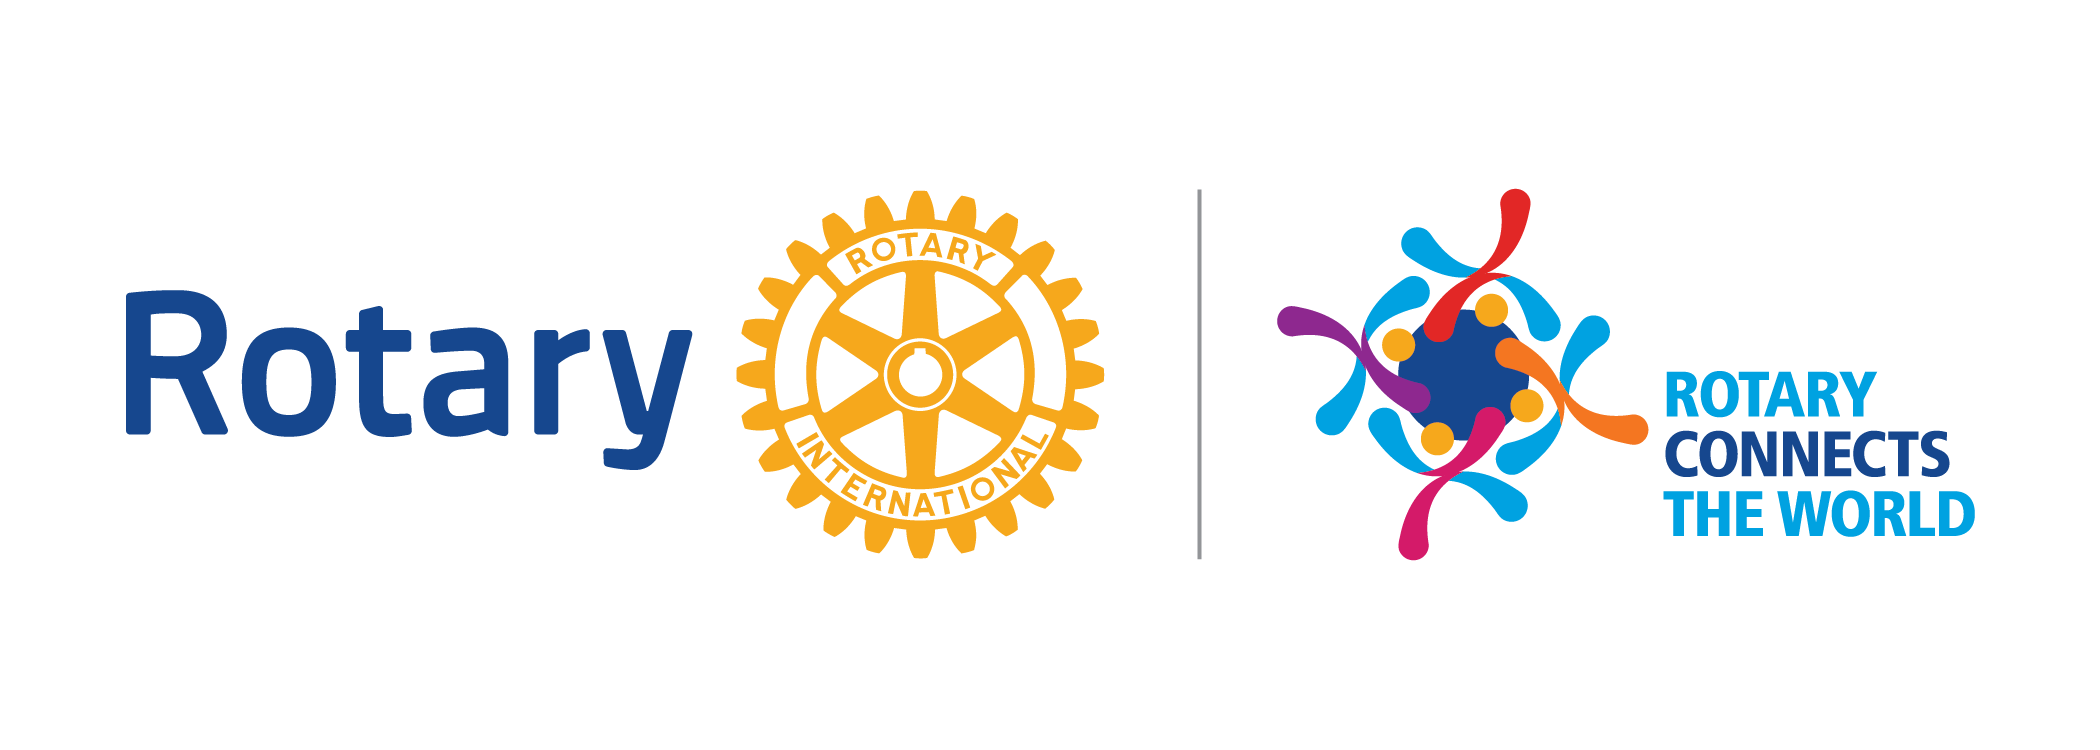 2019-20 Theme Logo Rotary Connects The World